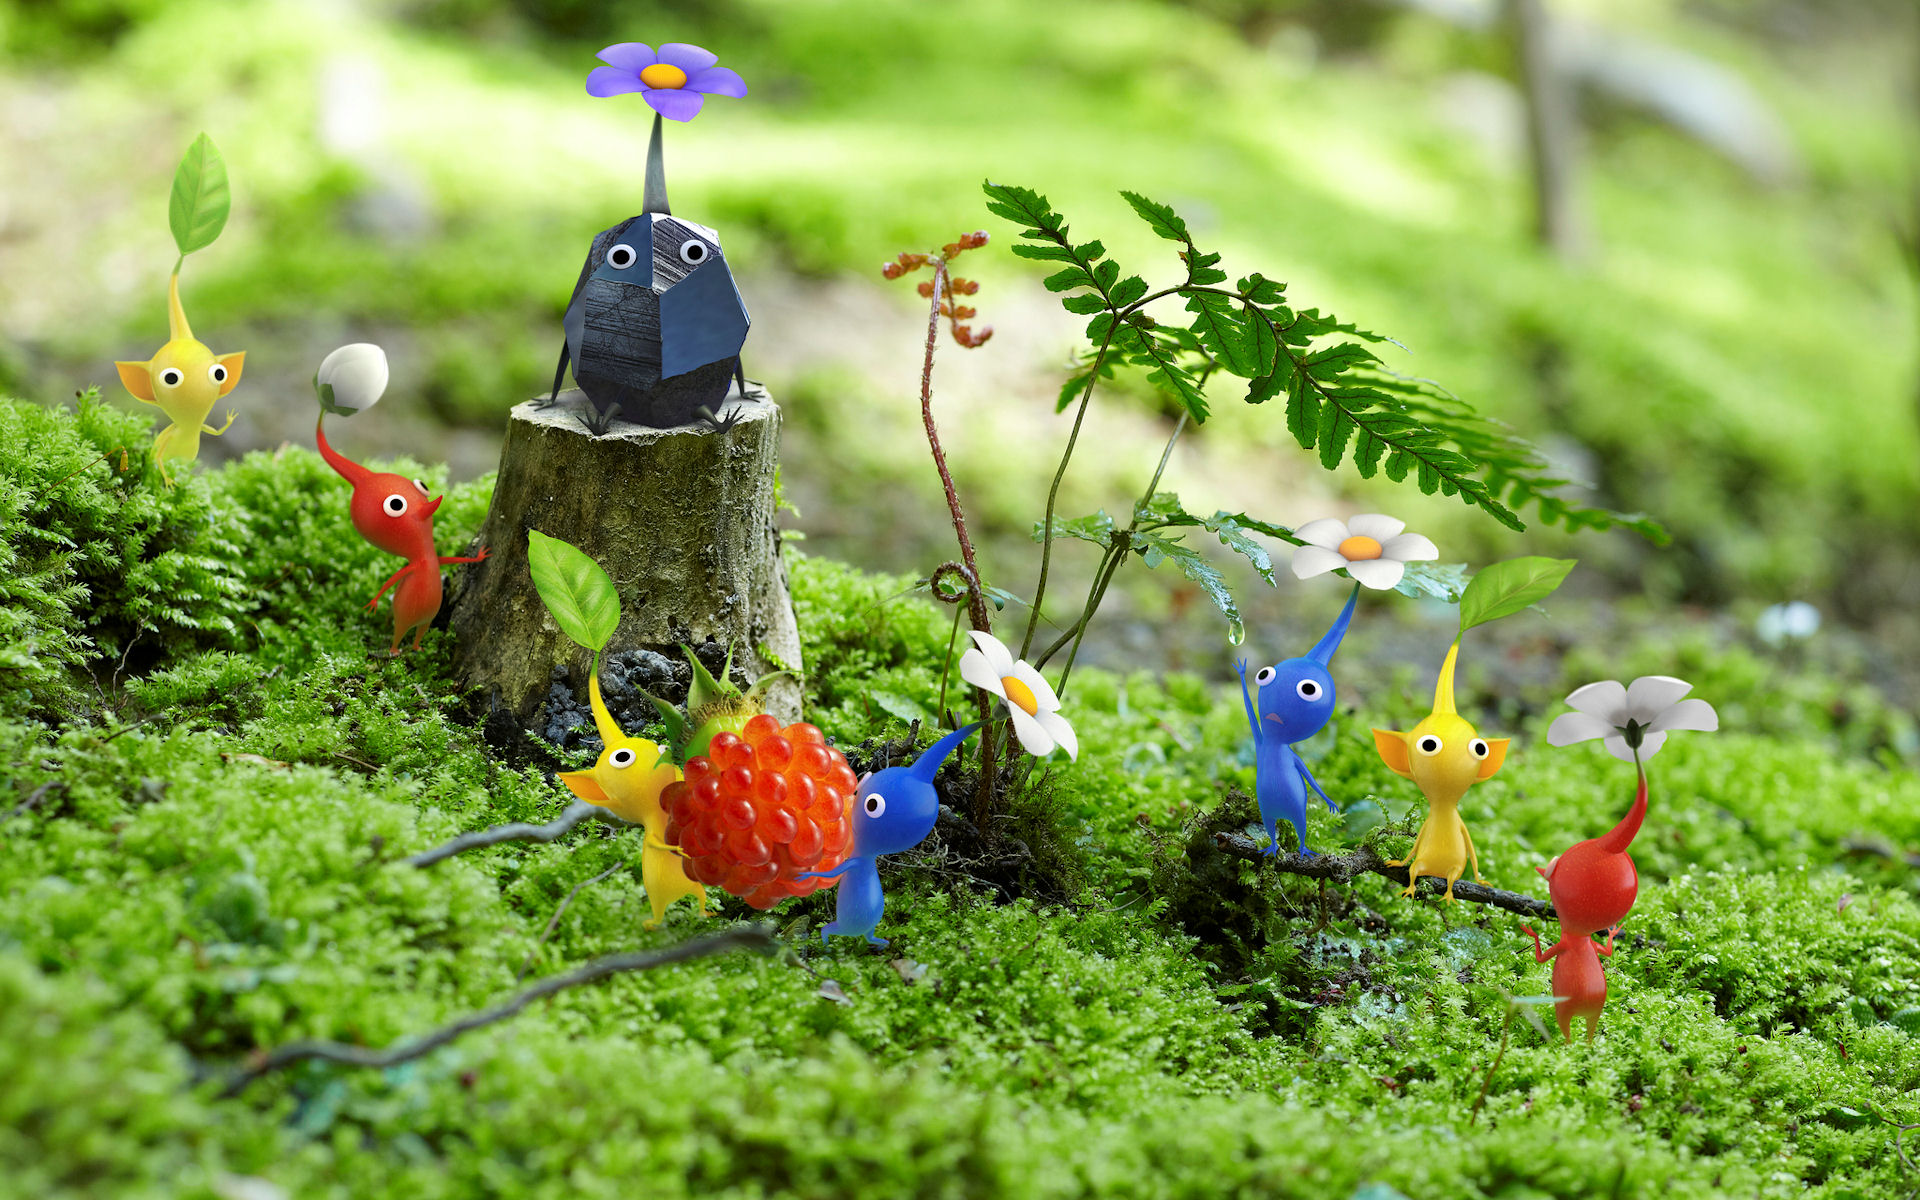 pikmin-3-wallpaper.jpg